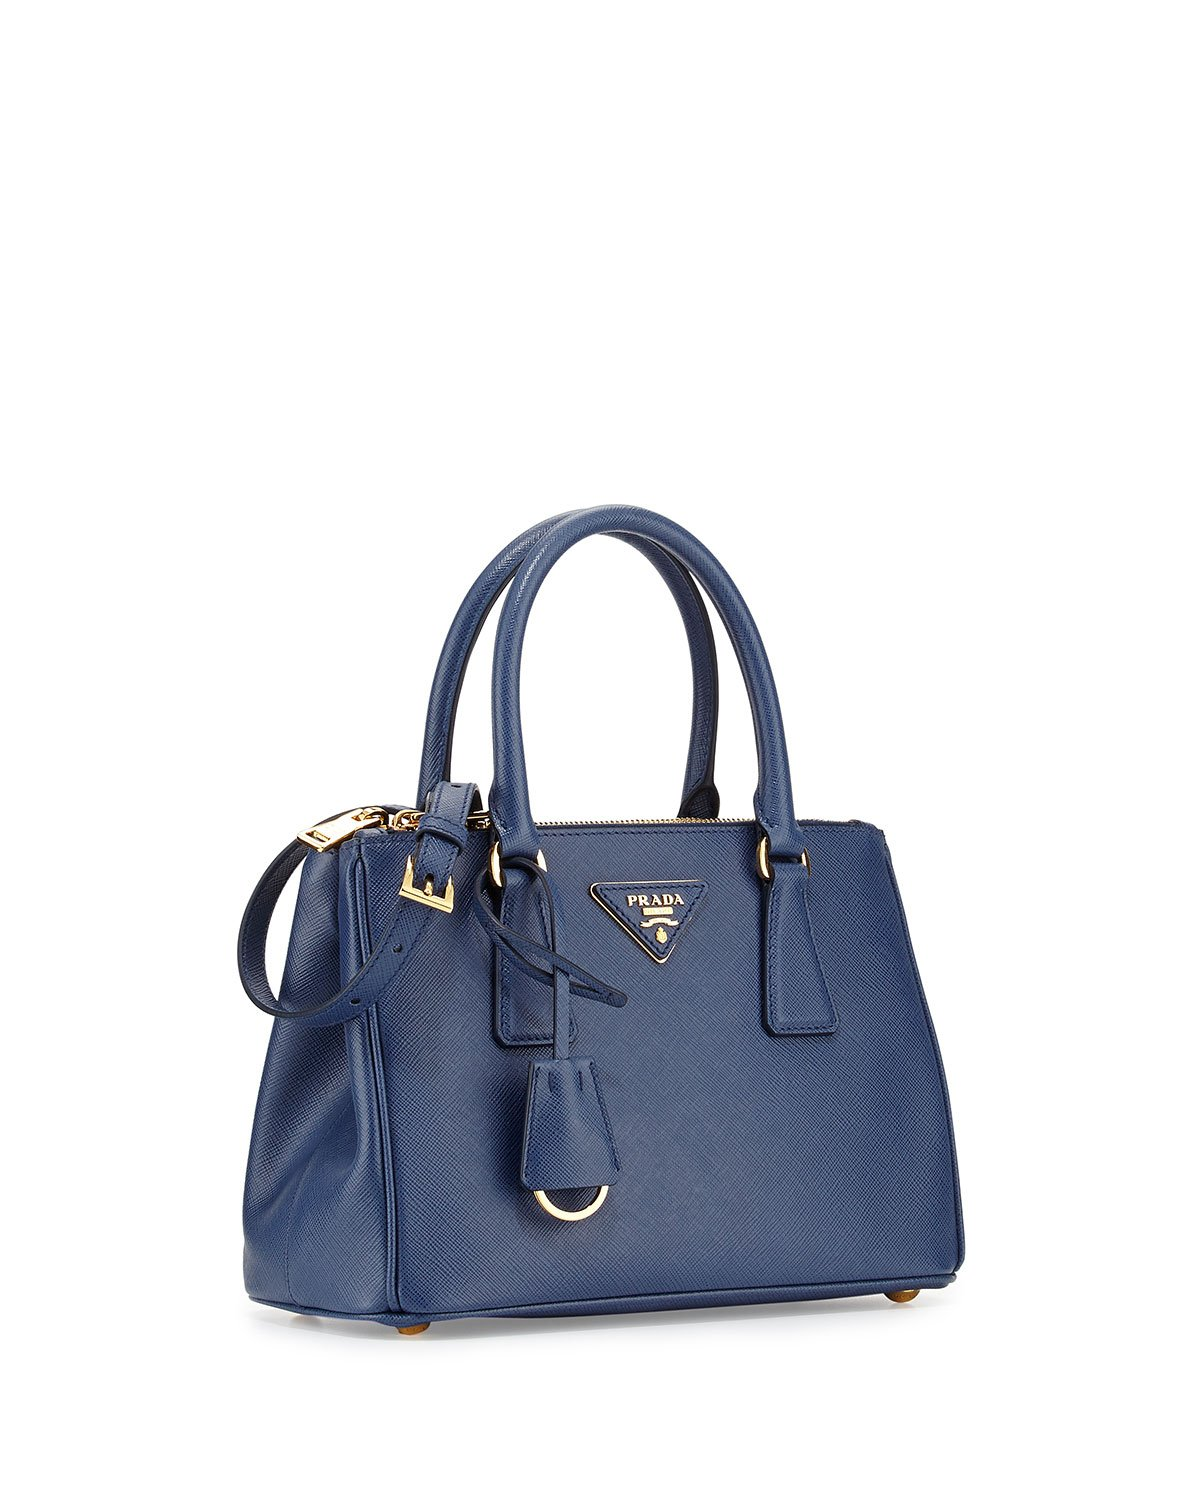 1078105470af cheap prada galleria bag 1801 saffiano leather 30cm light blue 5c574 74437  closeout  prada galleria bag cornflower blue absinth 7b224 79301